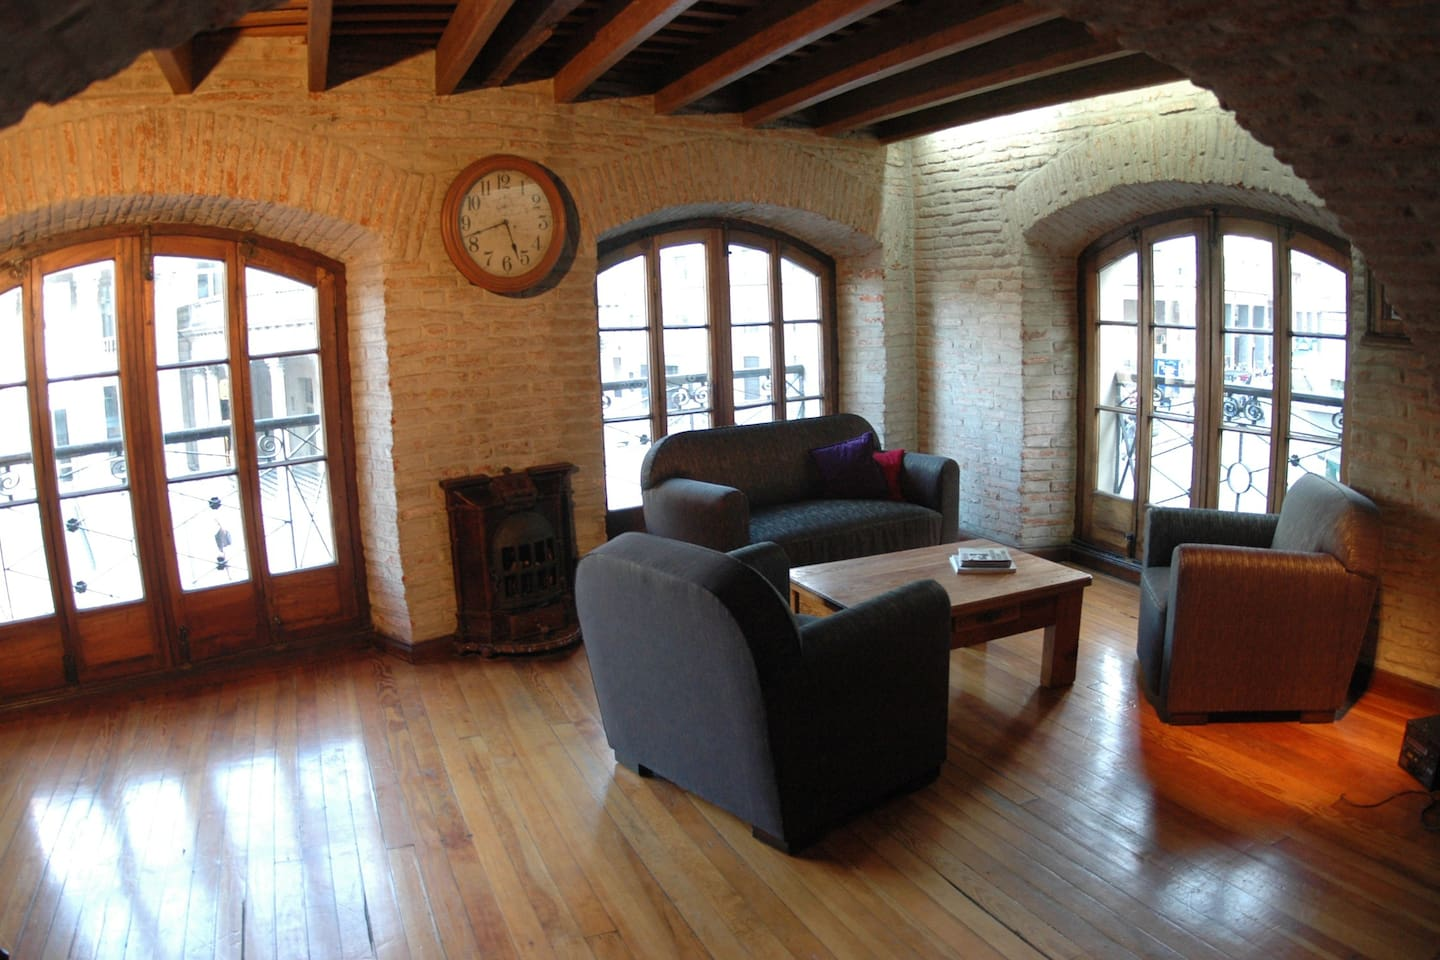 This is the living area, what you see behind is the historical Solis Theatre